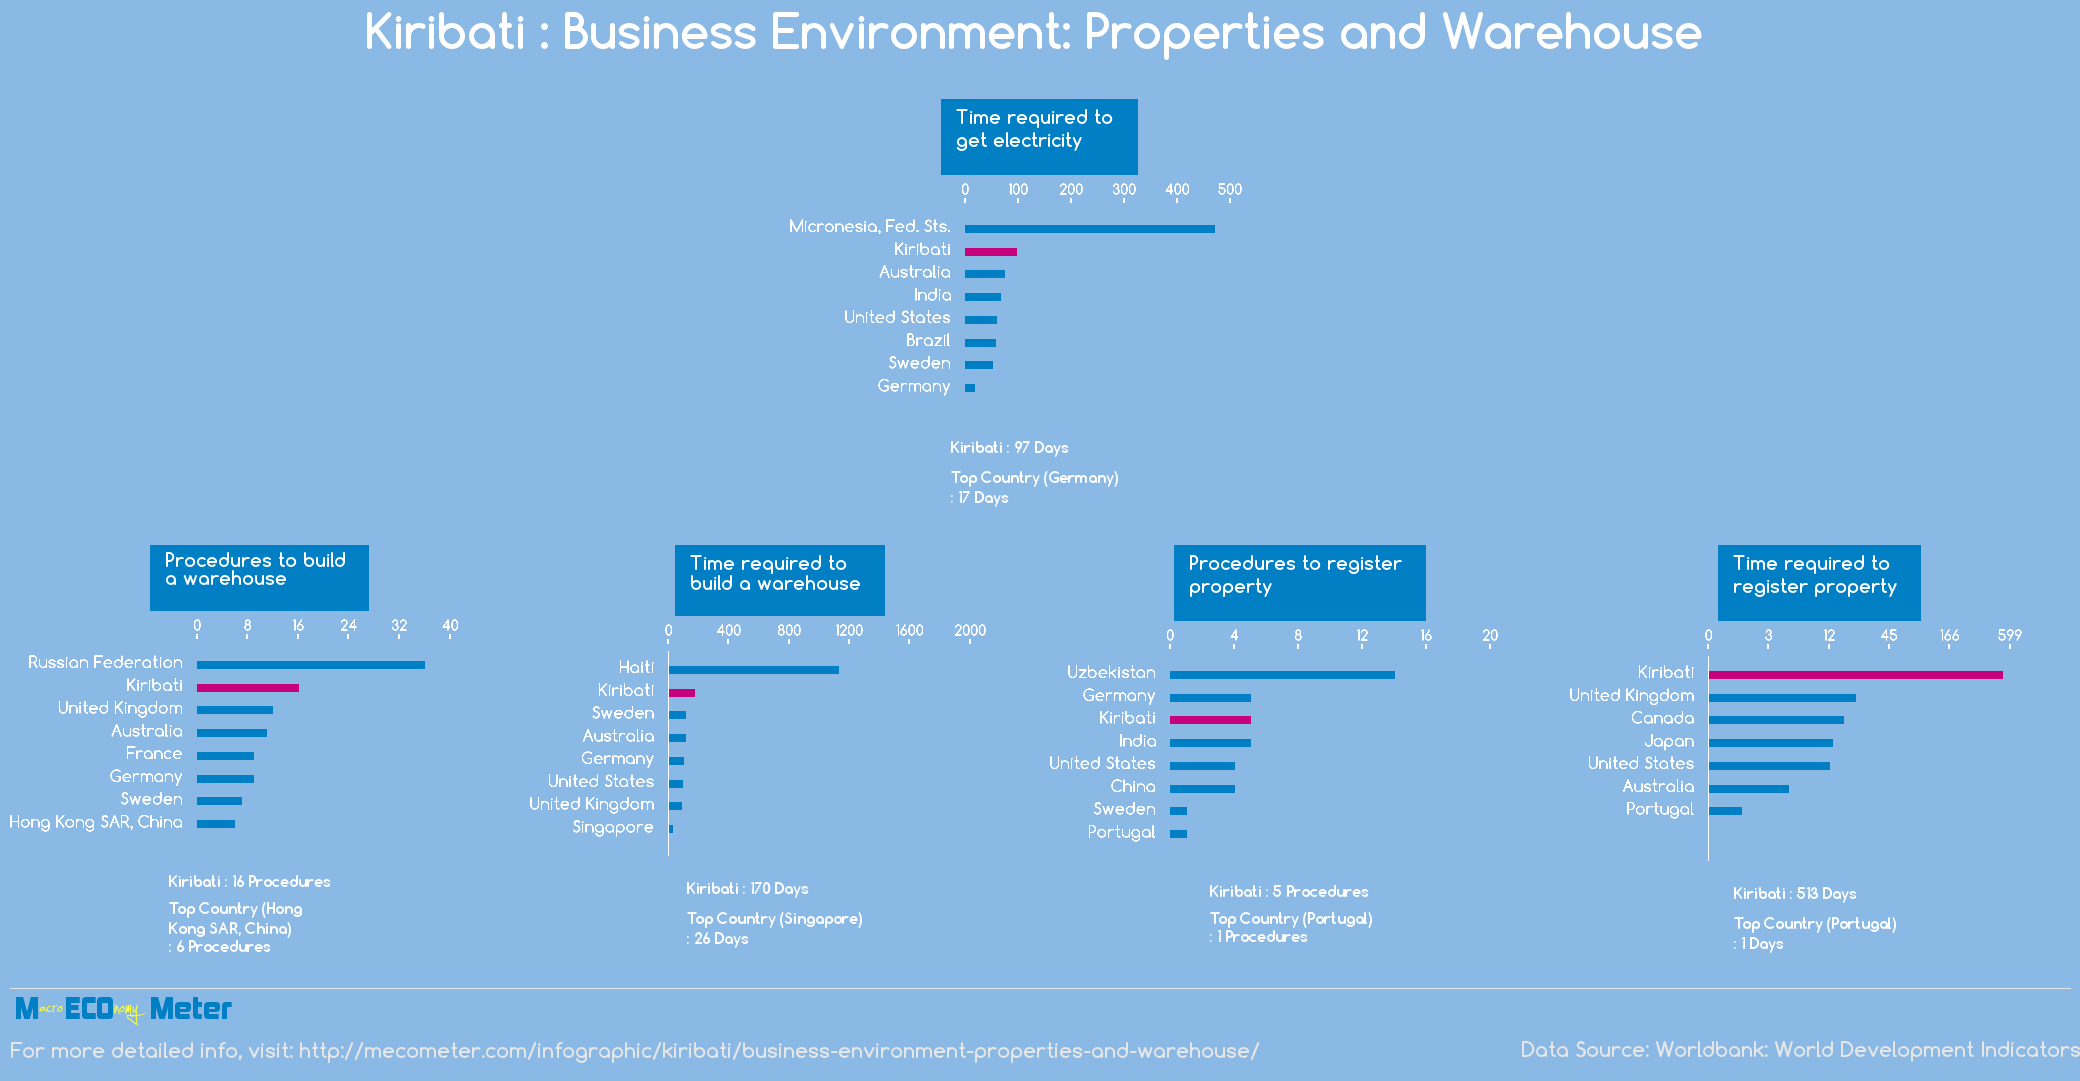 Kiribati : Business Environment: Properties and Warehouse